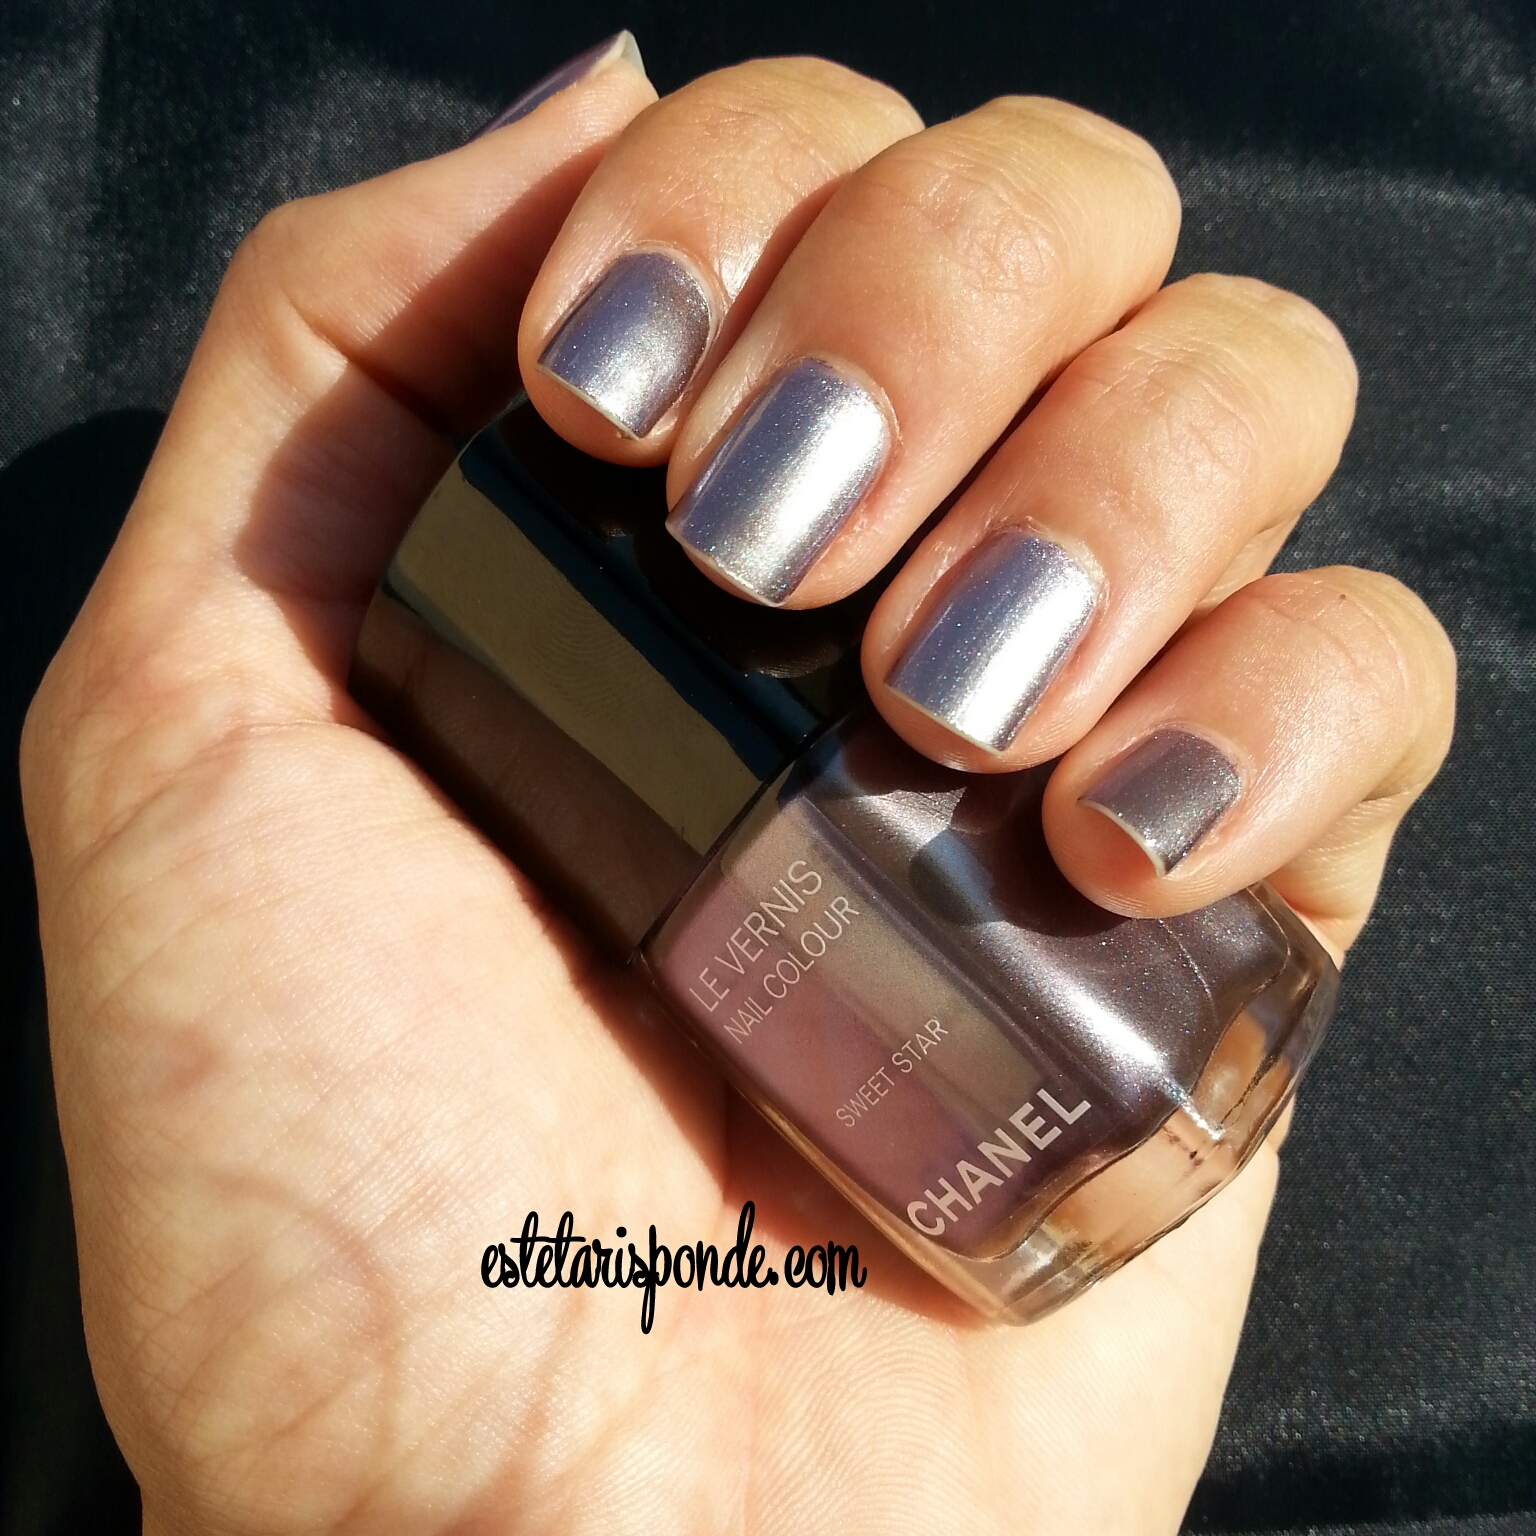 Chanel Le Vernis Sweet Star - VFNO 2014